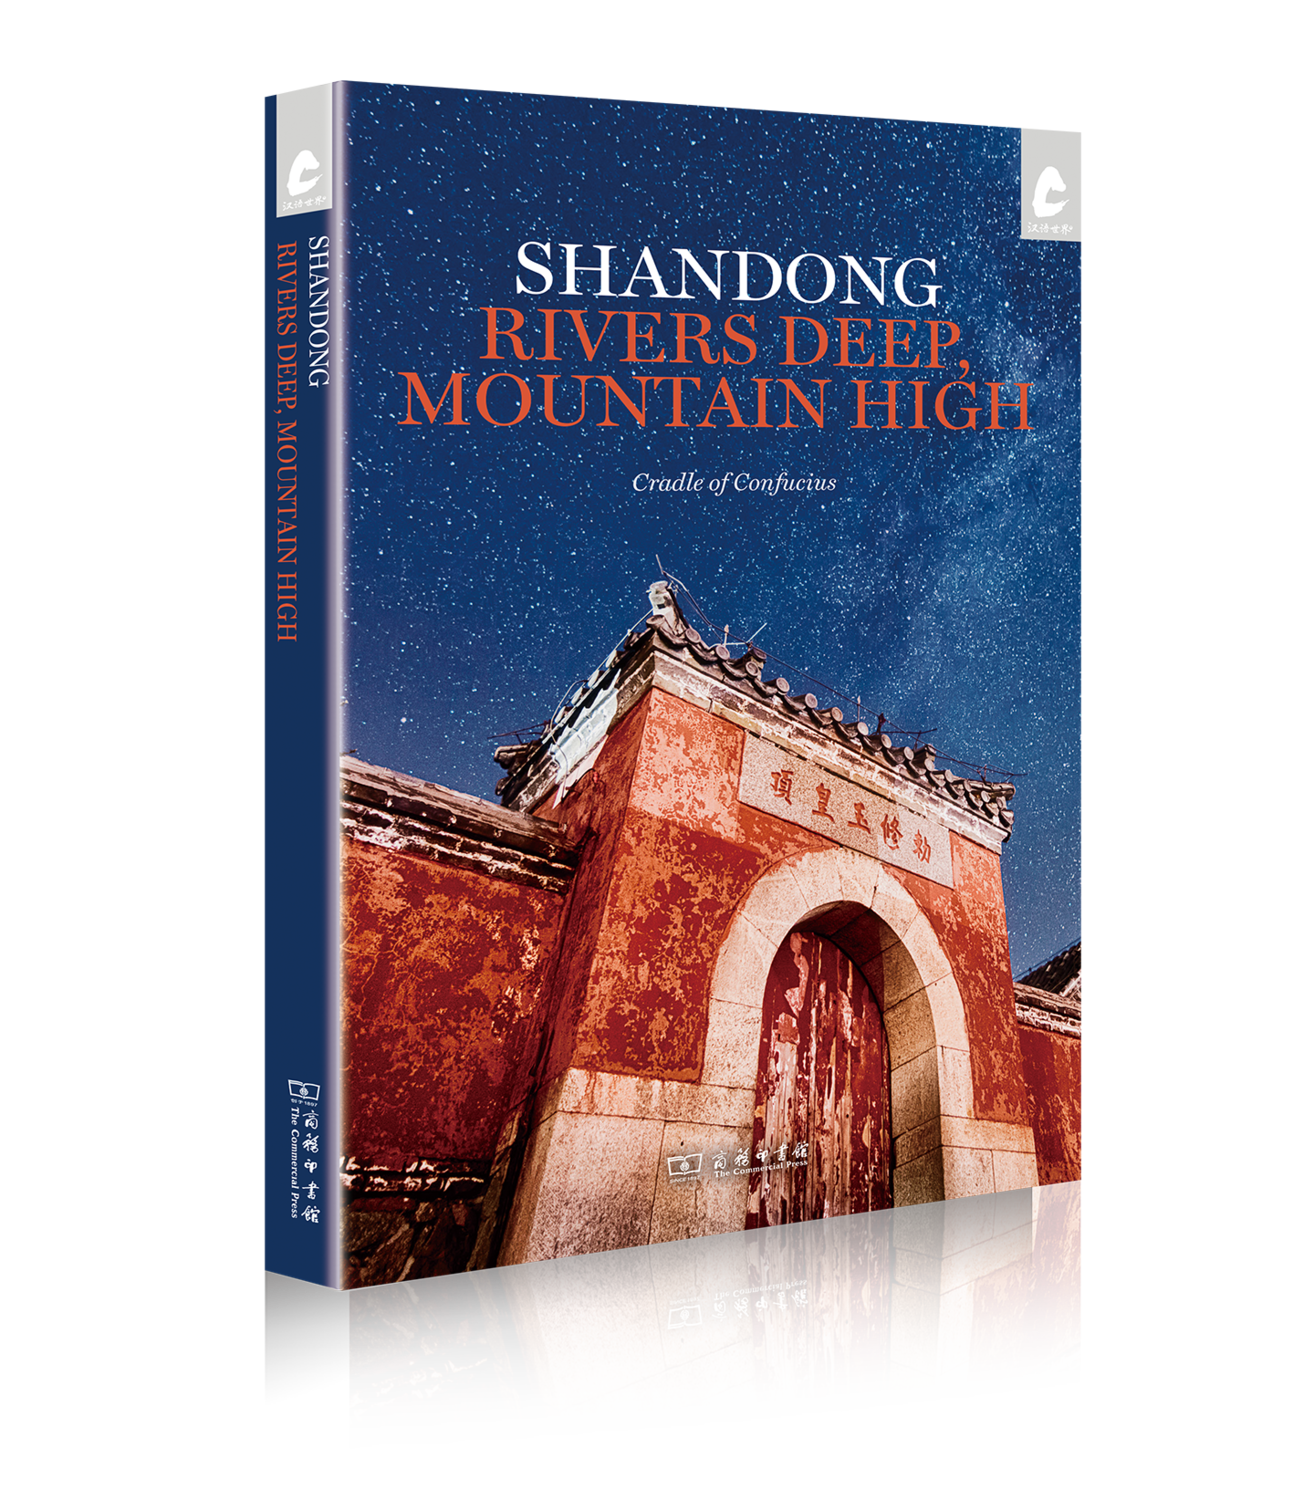 Shandong: Rivers Deep Mountain High